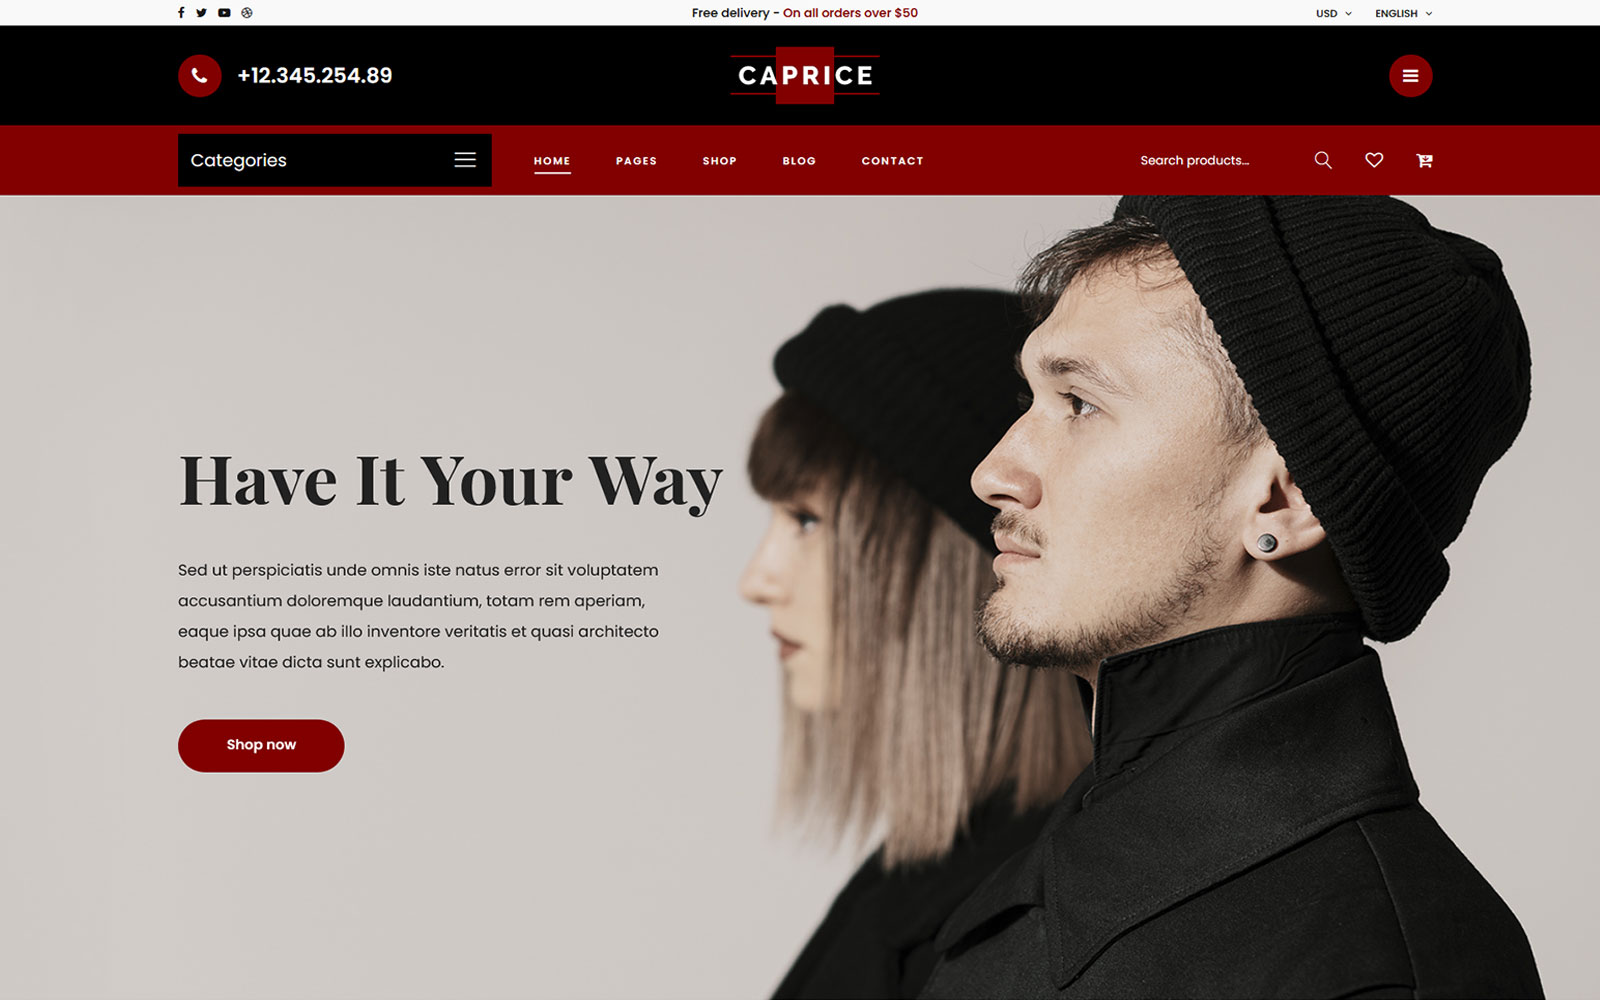 Caprice - Multipurpose eCommerce HTML Website Template